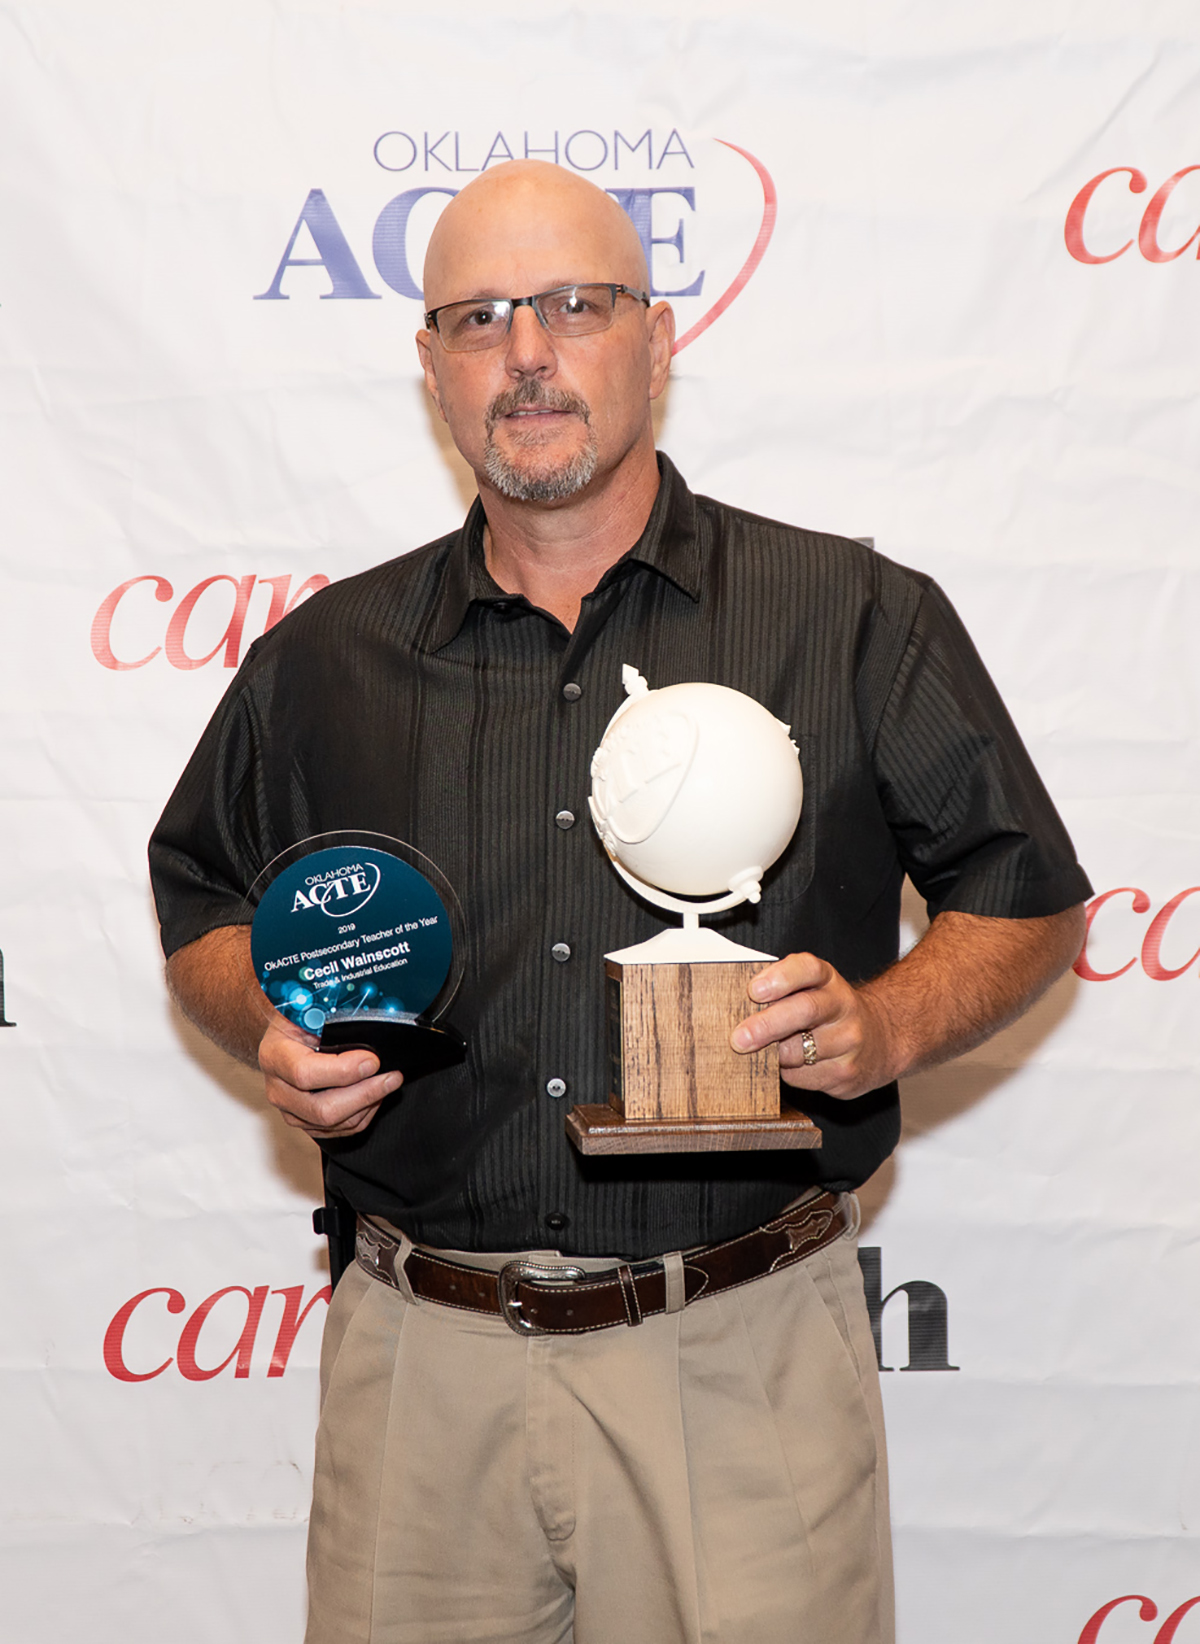 Skills Centers Instructor Named Outstanding CareerTech Postsecondary Teacher of the Year